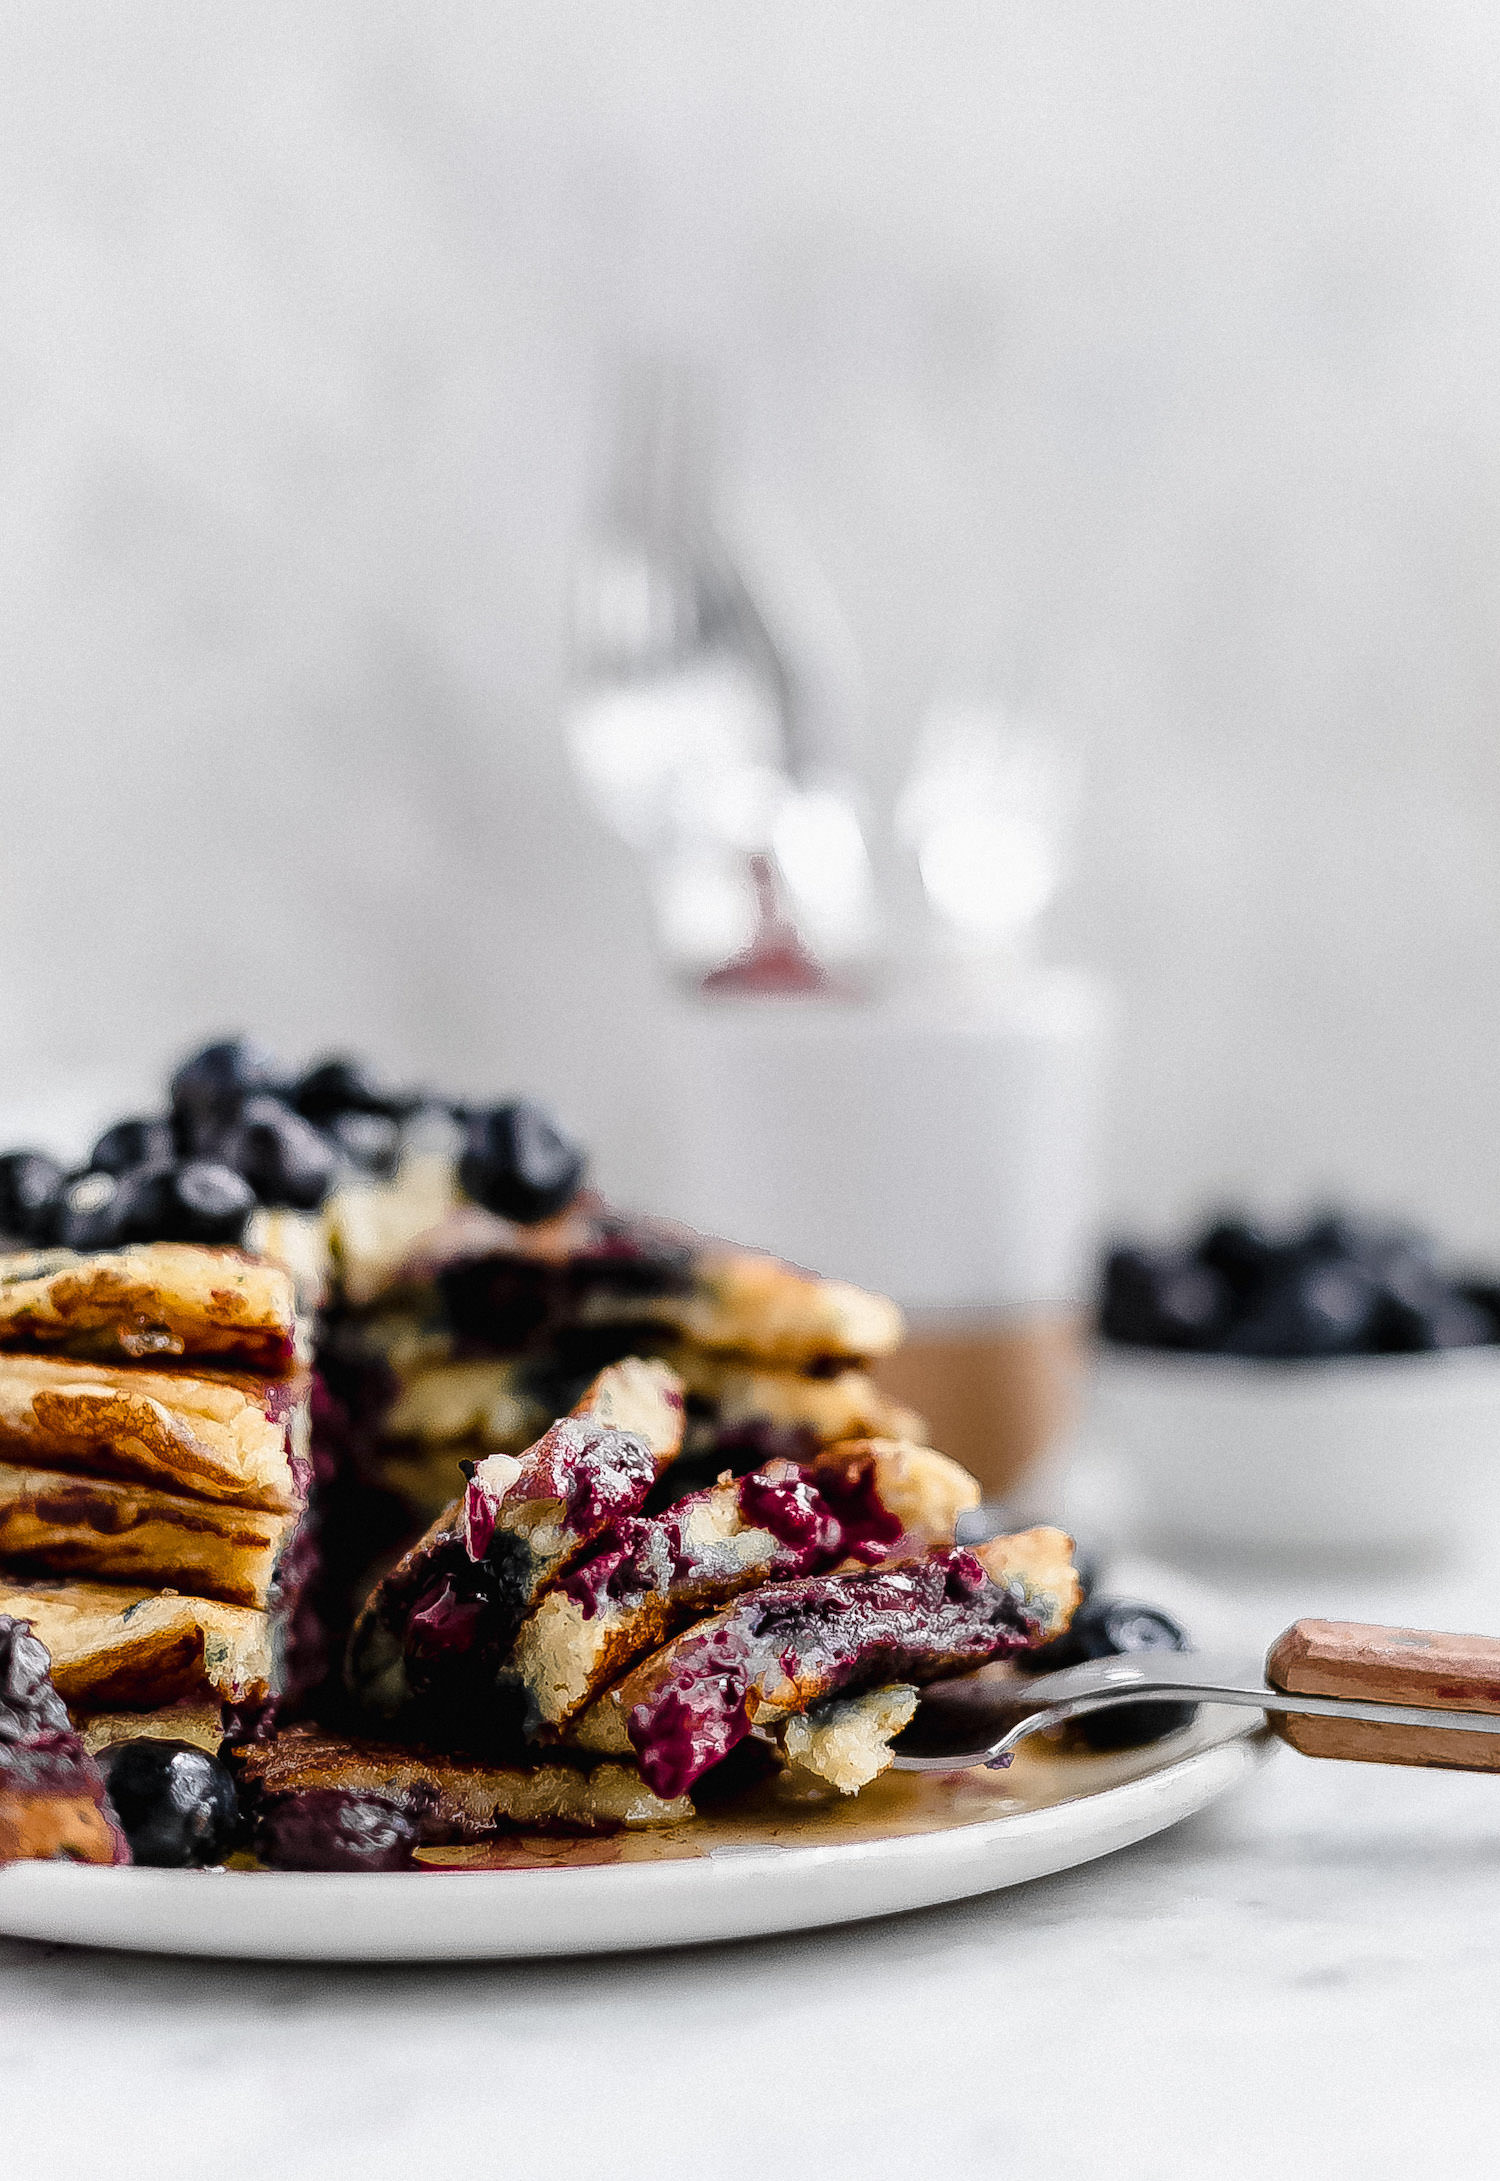 Favorite Blueberry Pancakes: soft, fluffy, rich, flavorful pancakes bursting with fresh, tart blueberries. Favorite pancake recipe ever! | TrufflesandTrends.com